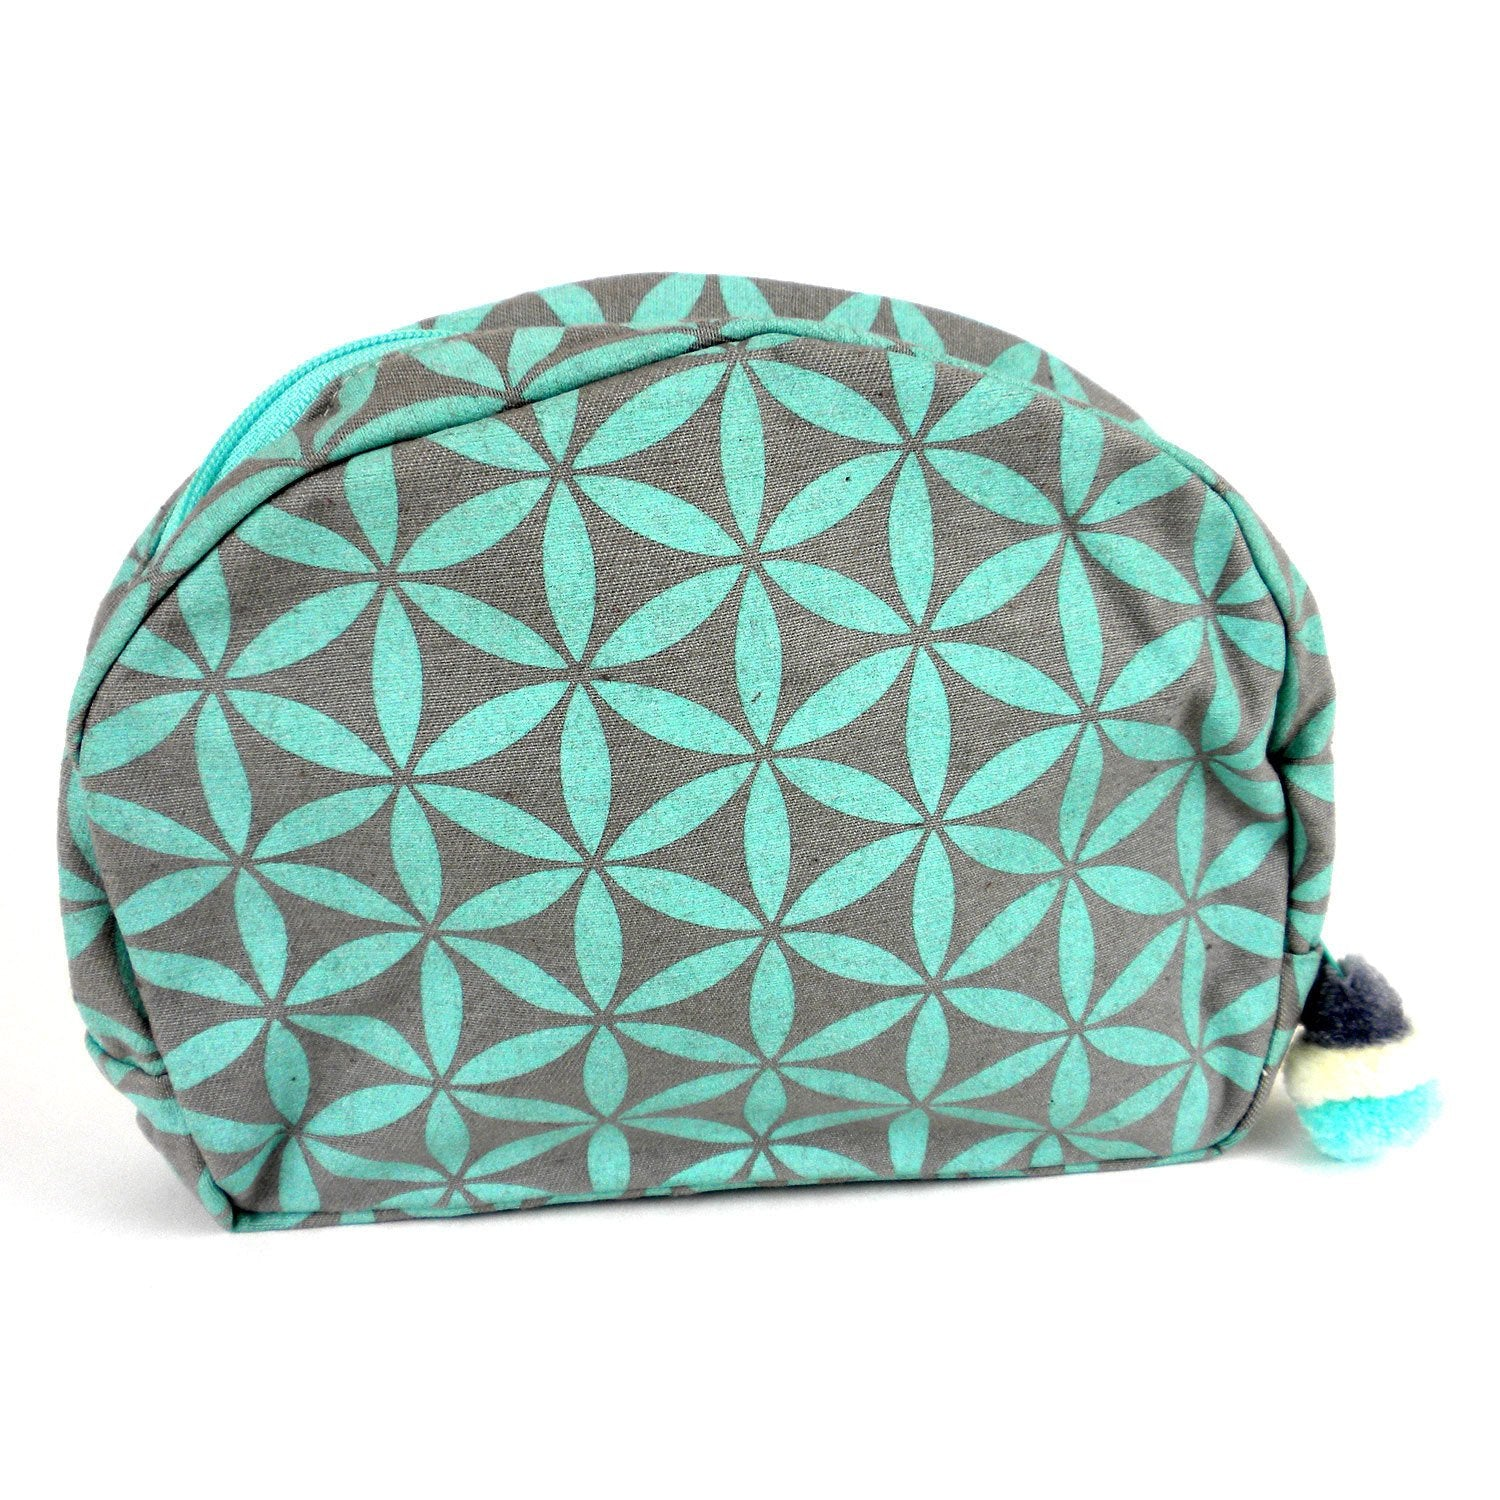 Flower of Life Collection Cosmetic Bag, Grey/Turquoise